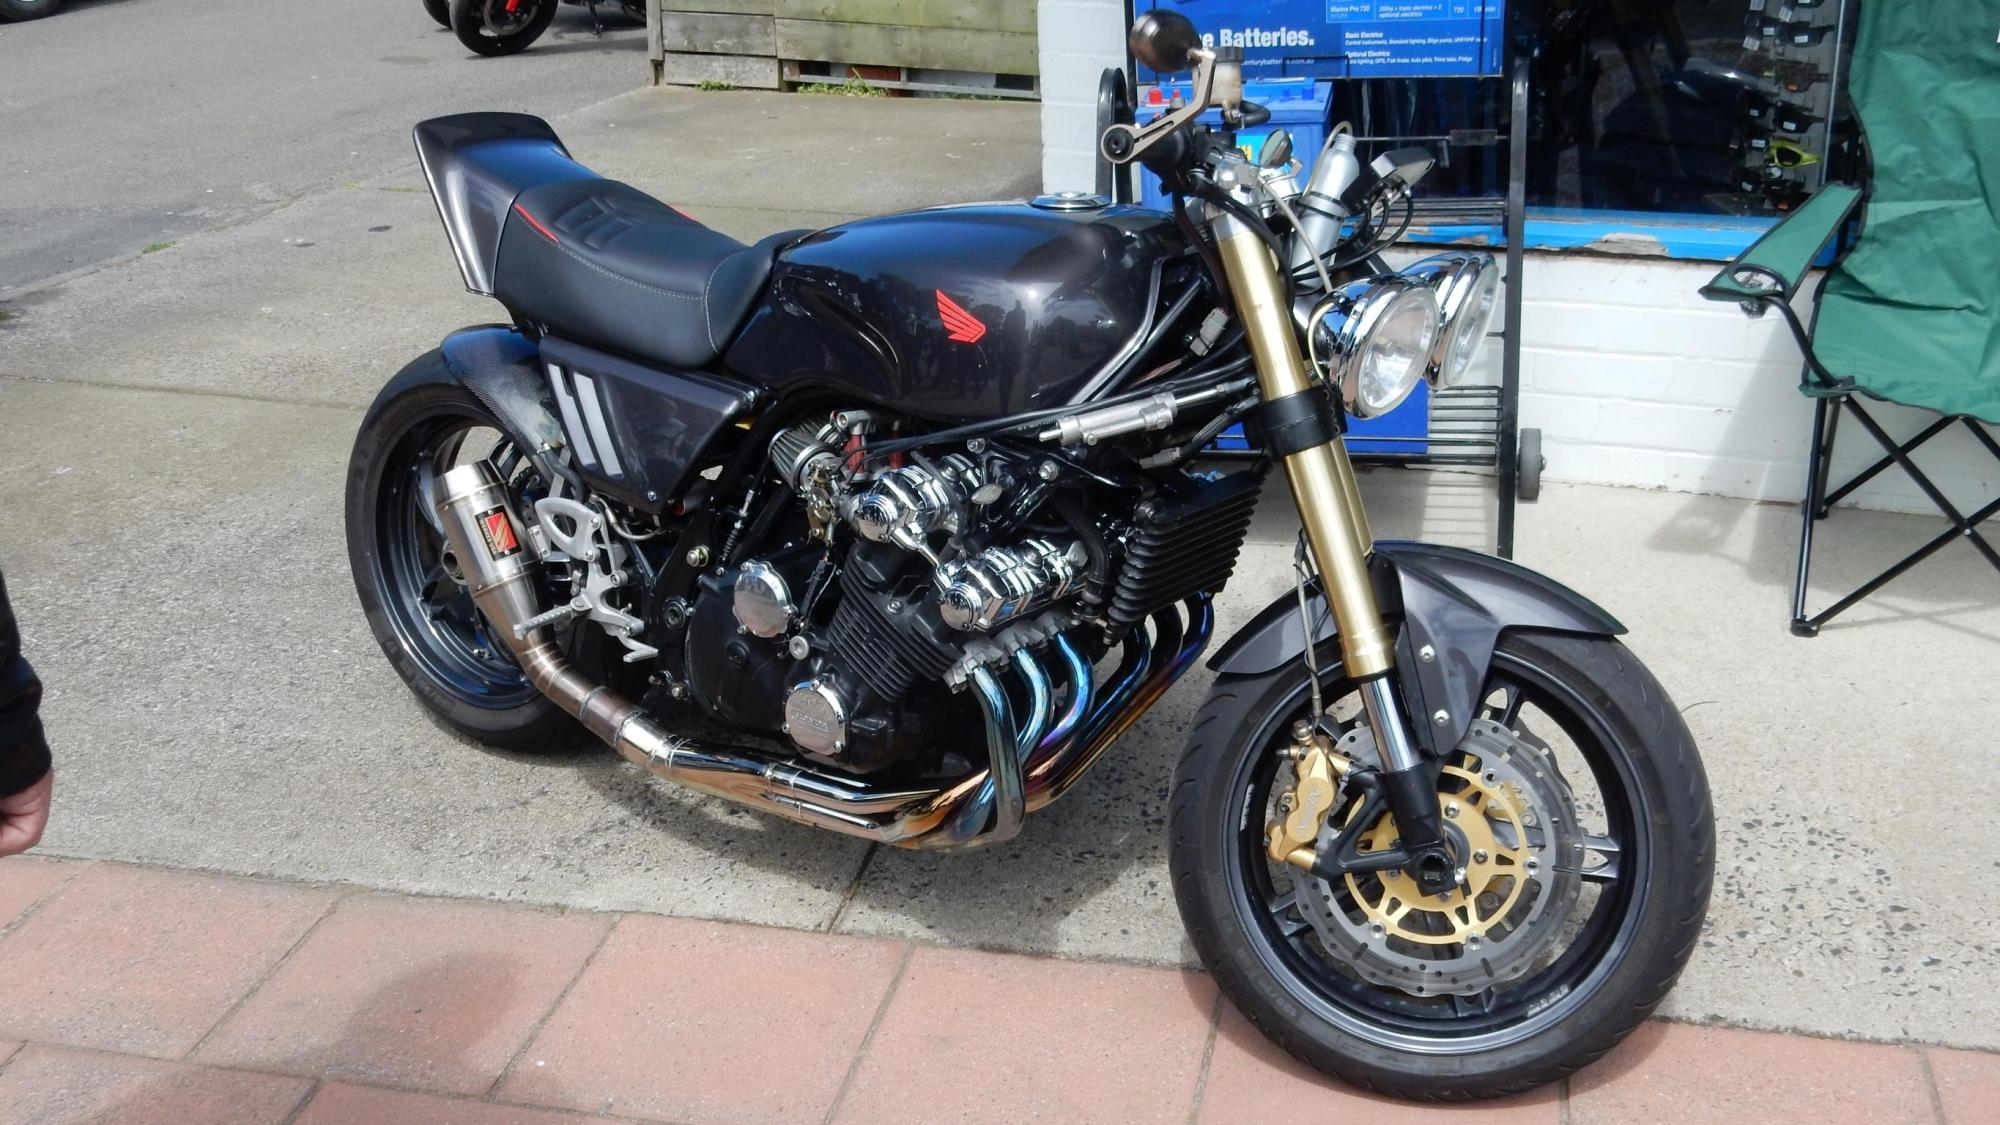 hight resolution of highly modified honda cbx 1000 i saw at a bike meet this guy s put a lot of work into it